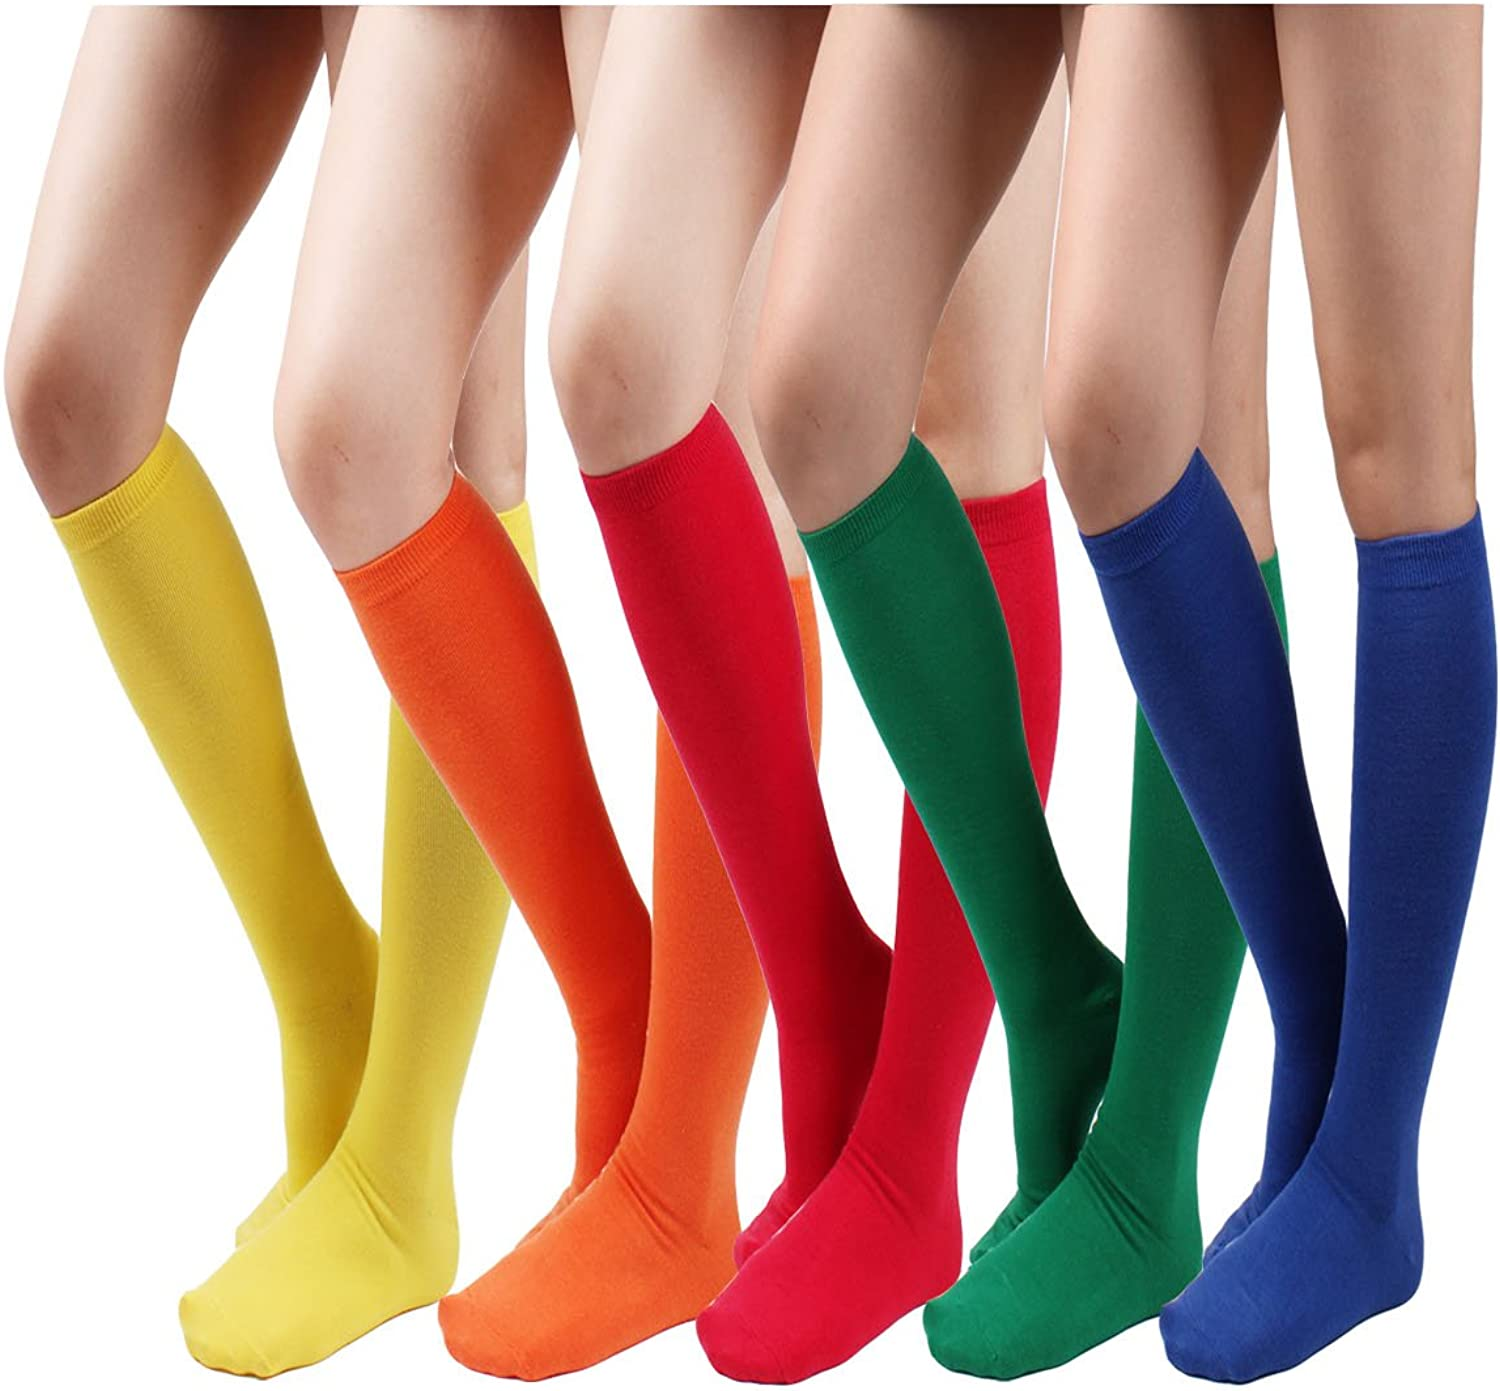 10STAR11 Women's 3,5 Pair Cotton colorful Everyday Solid Knee High Socks